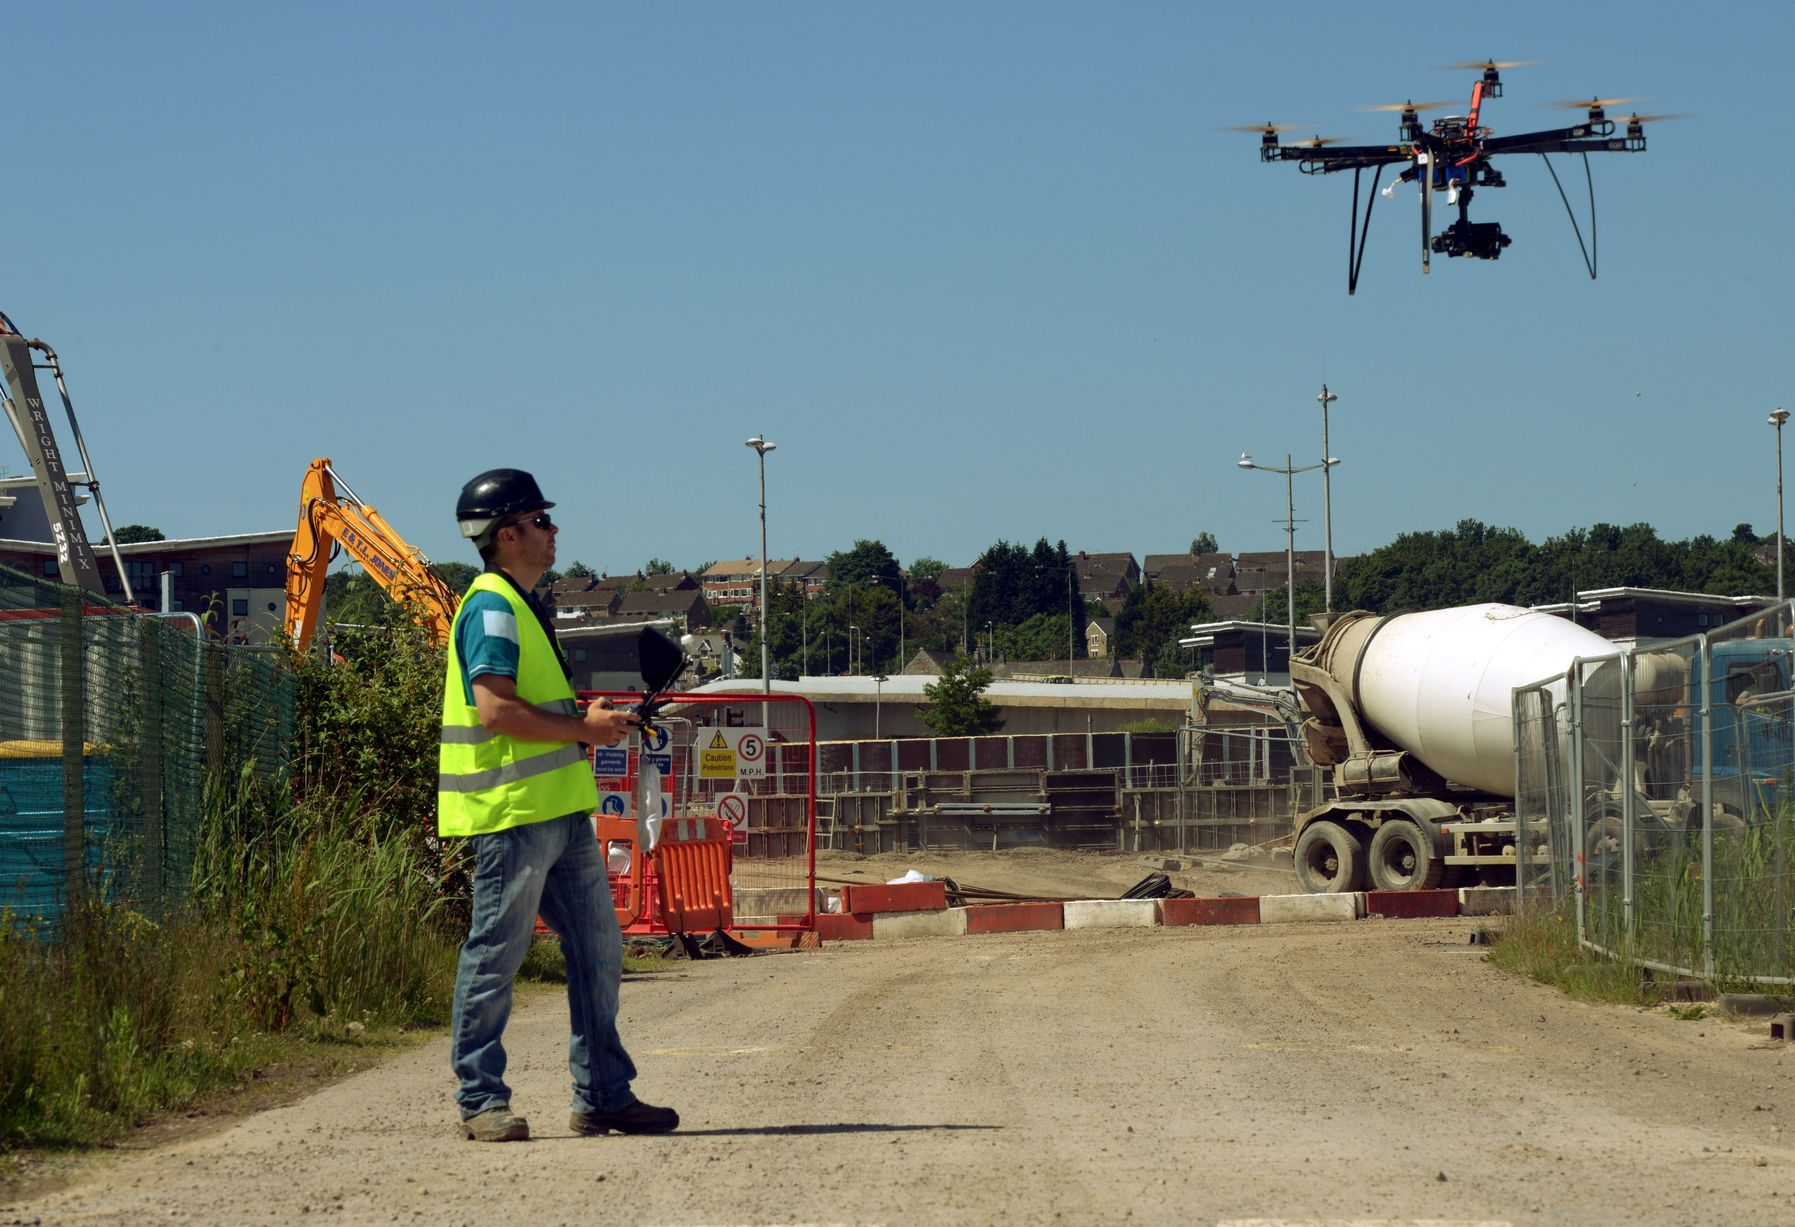 Could Drones Save 100s of Construction Workers? - The Sociable